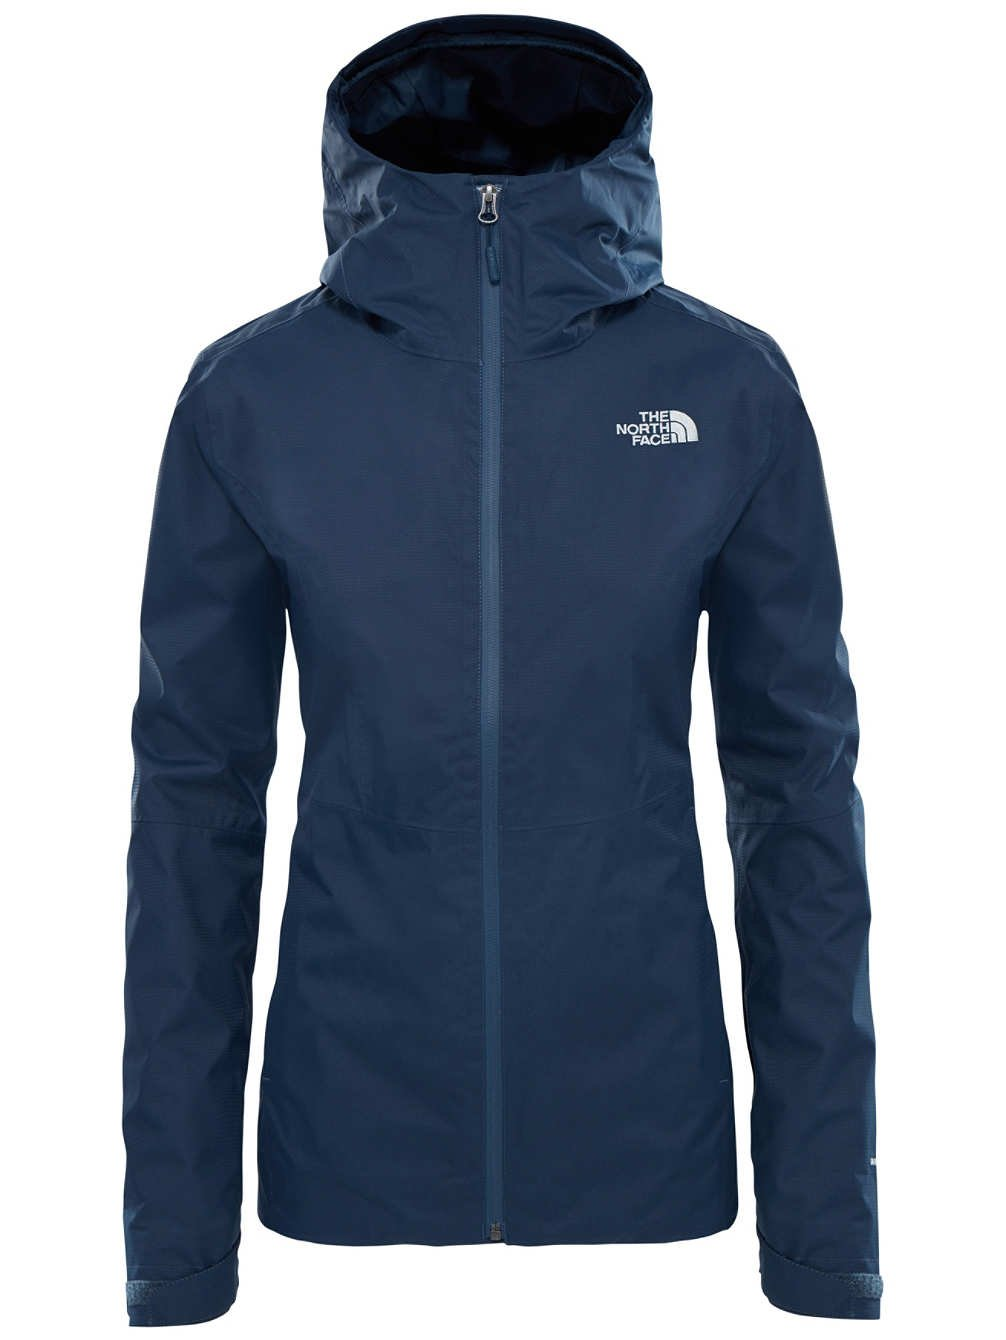 THE NORTH FACE Zip in DryVent 2L Shell Jacke Women - Regenjacke